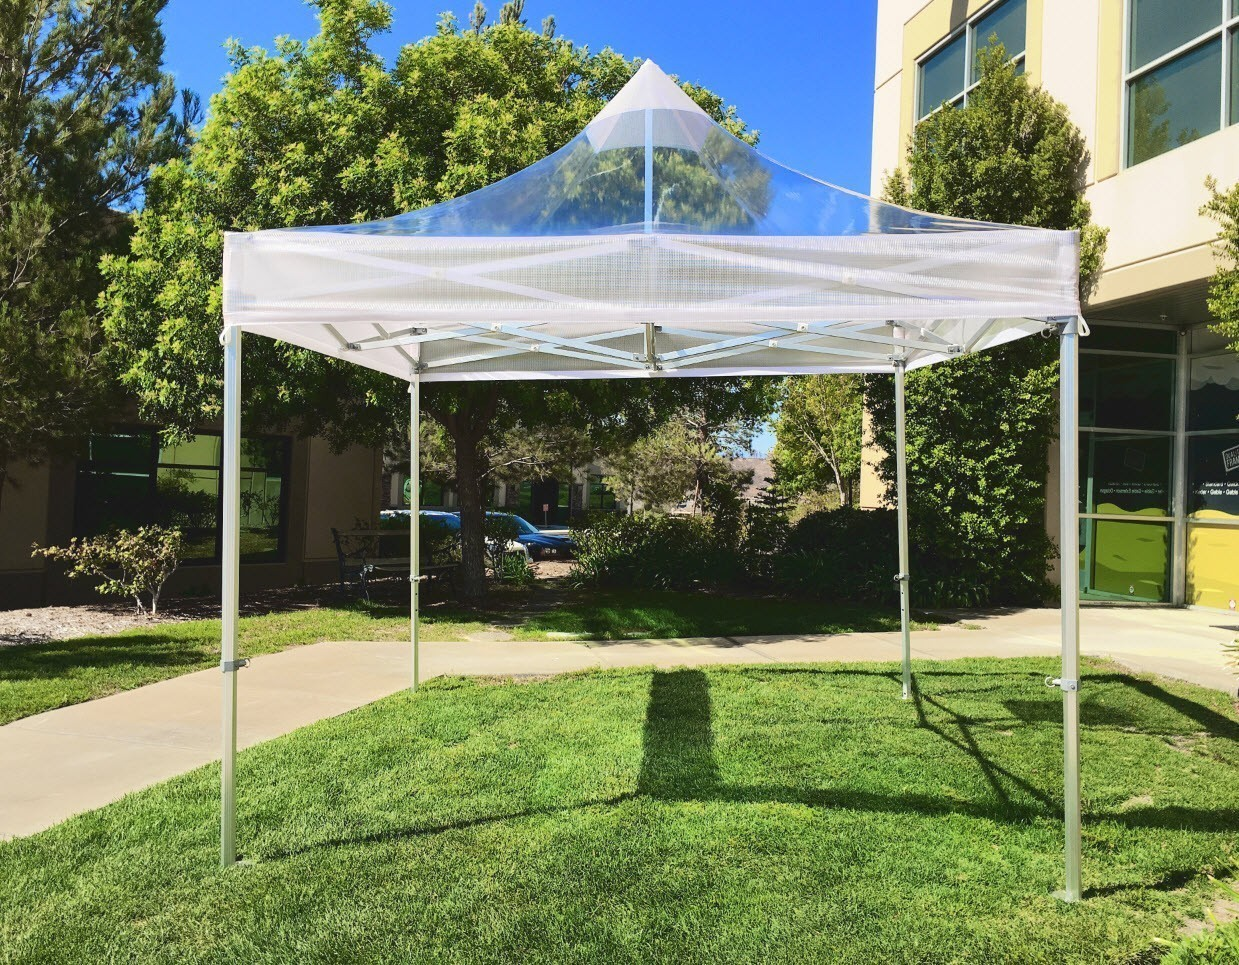 10×10 Commercial Clear Popup Tent & 10x10 Commercial Clear Popup Tent - Central Tent